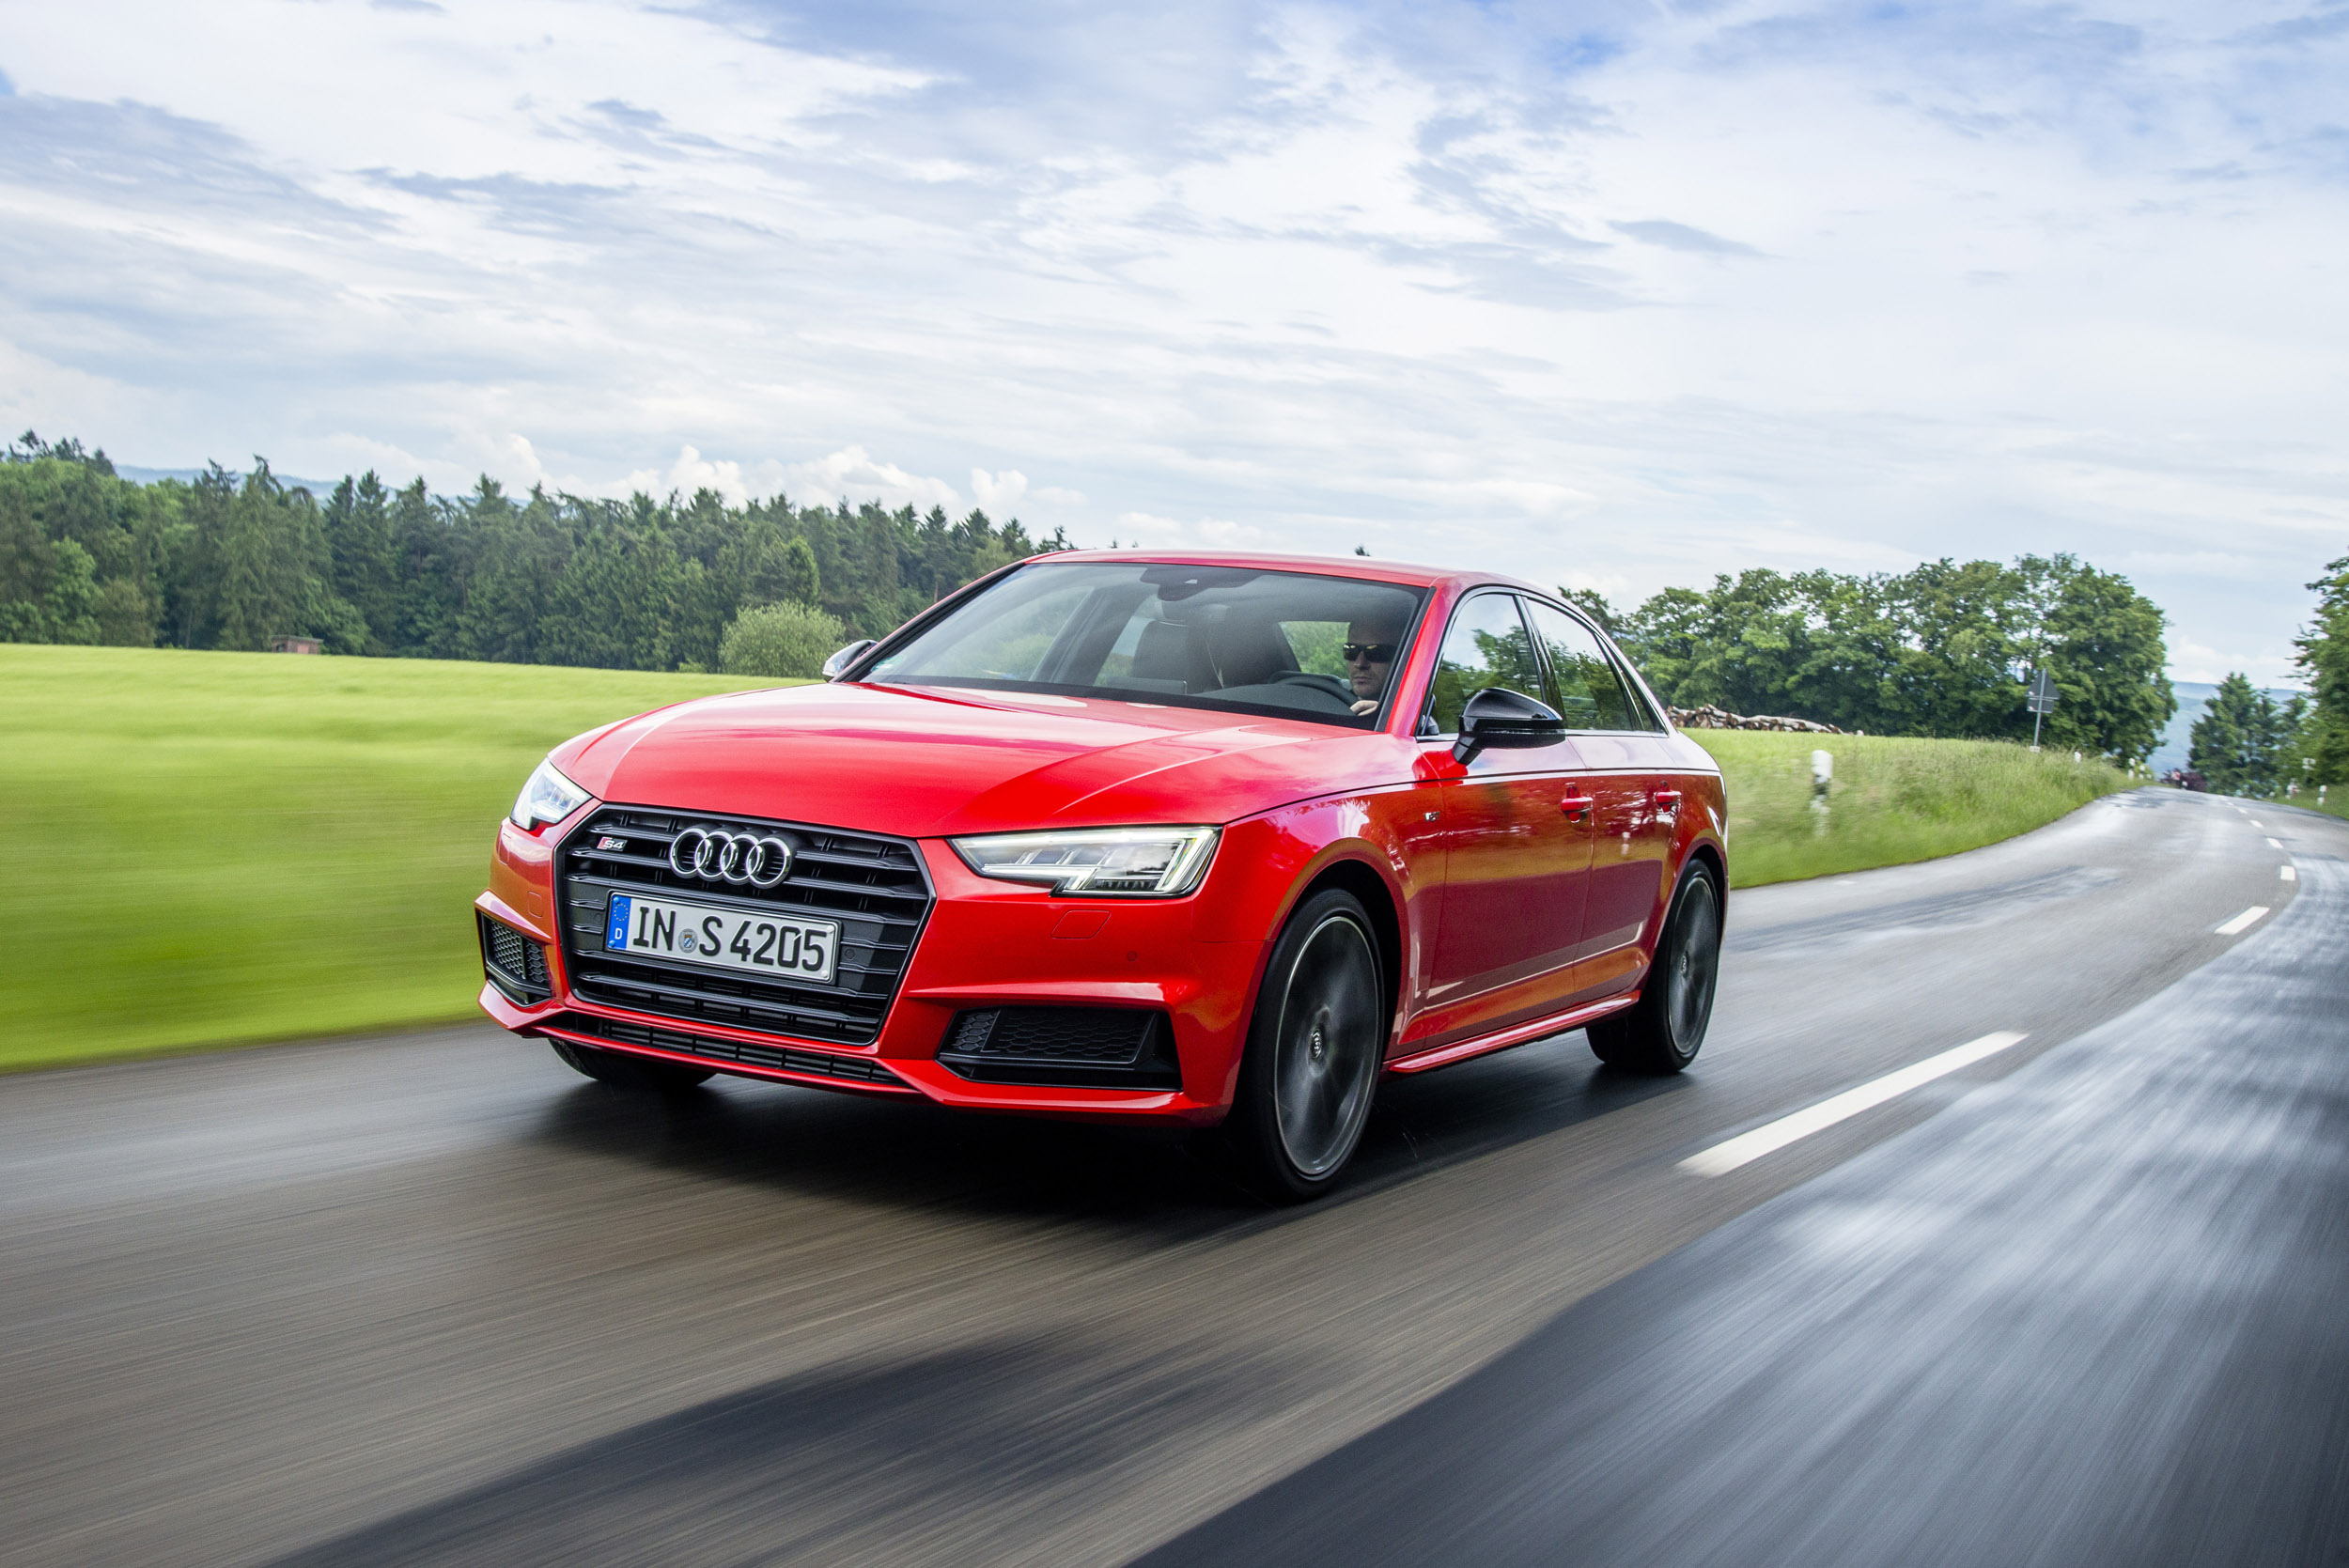 Audi S4 0 60 >> 2019 Audi S4 Tdi Review Appeals To The Head If Not The